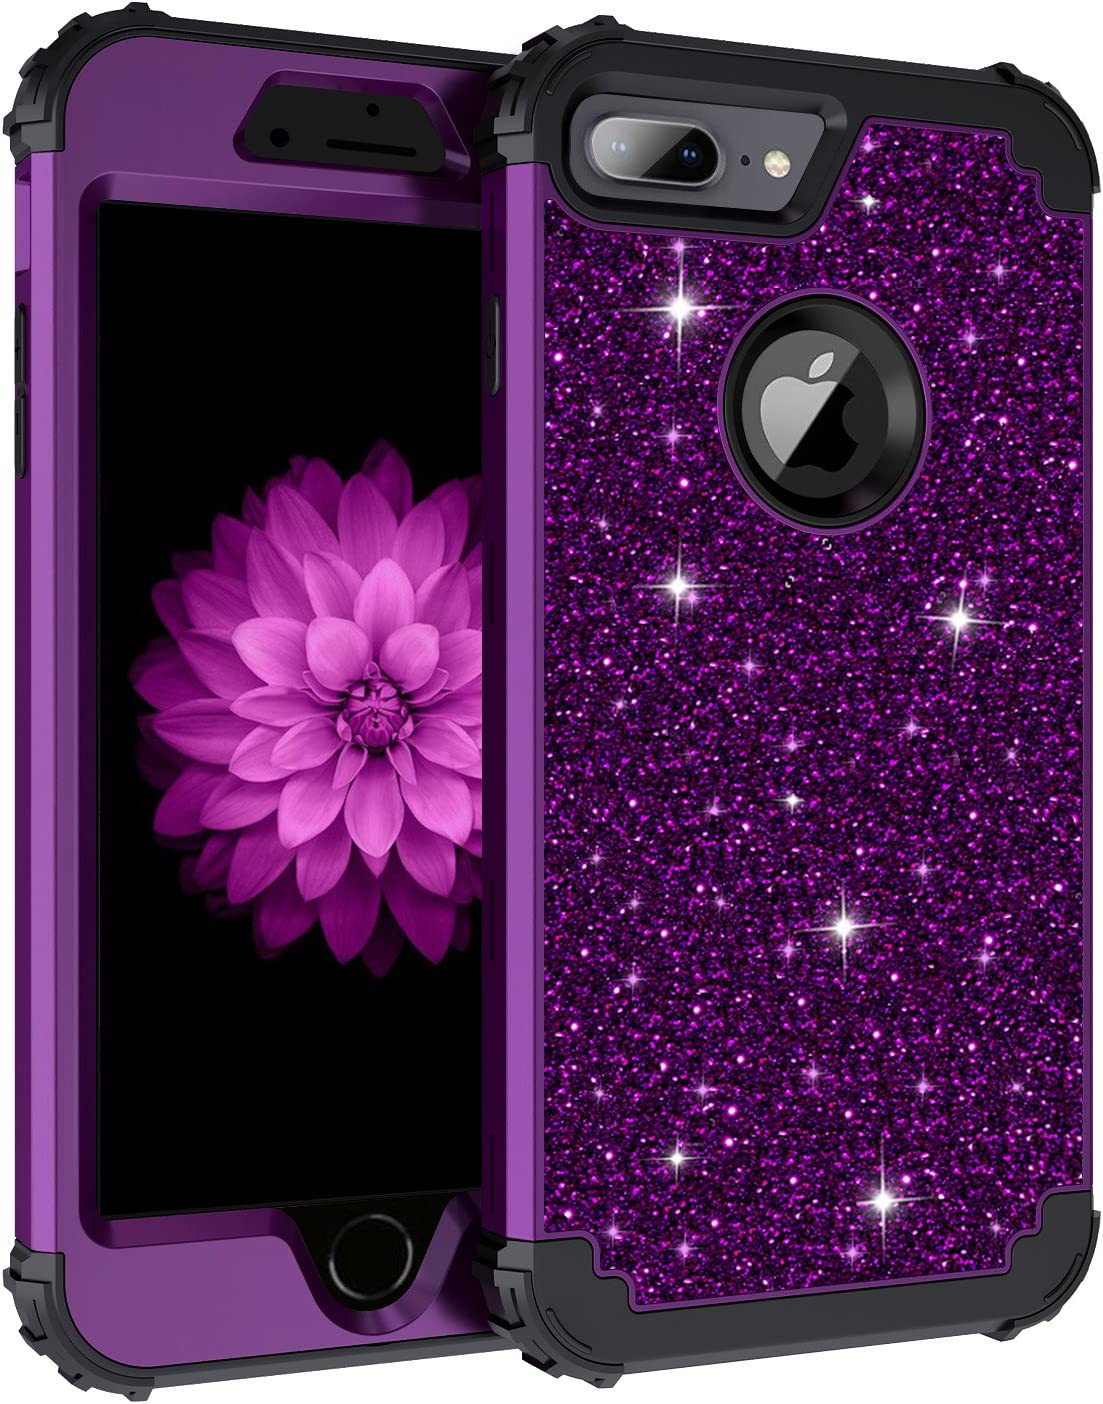 Lontect for iPhone 8 Plus Case, iPhone 7 Plus Case Glitter Sparkle Bling Heavy Duty Hybrid Sturdy High Impact Shockproof Protective Cover Case for Apple iPhone 8 Plus/iPhone 7 Plus, Shiny Purple/Black